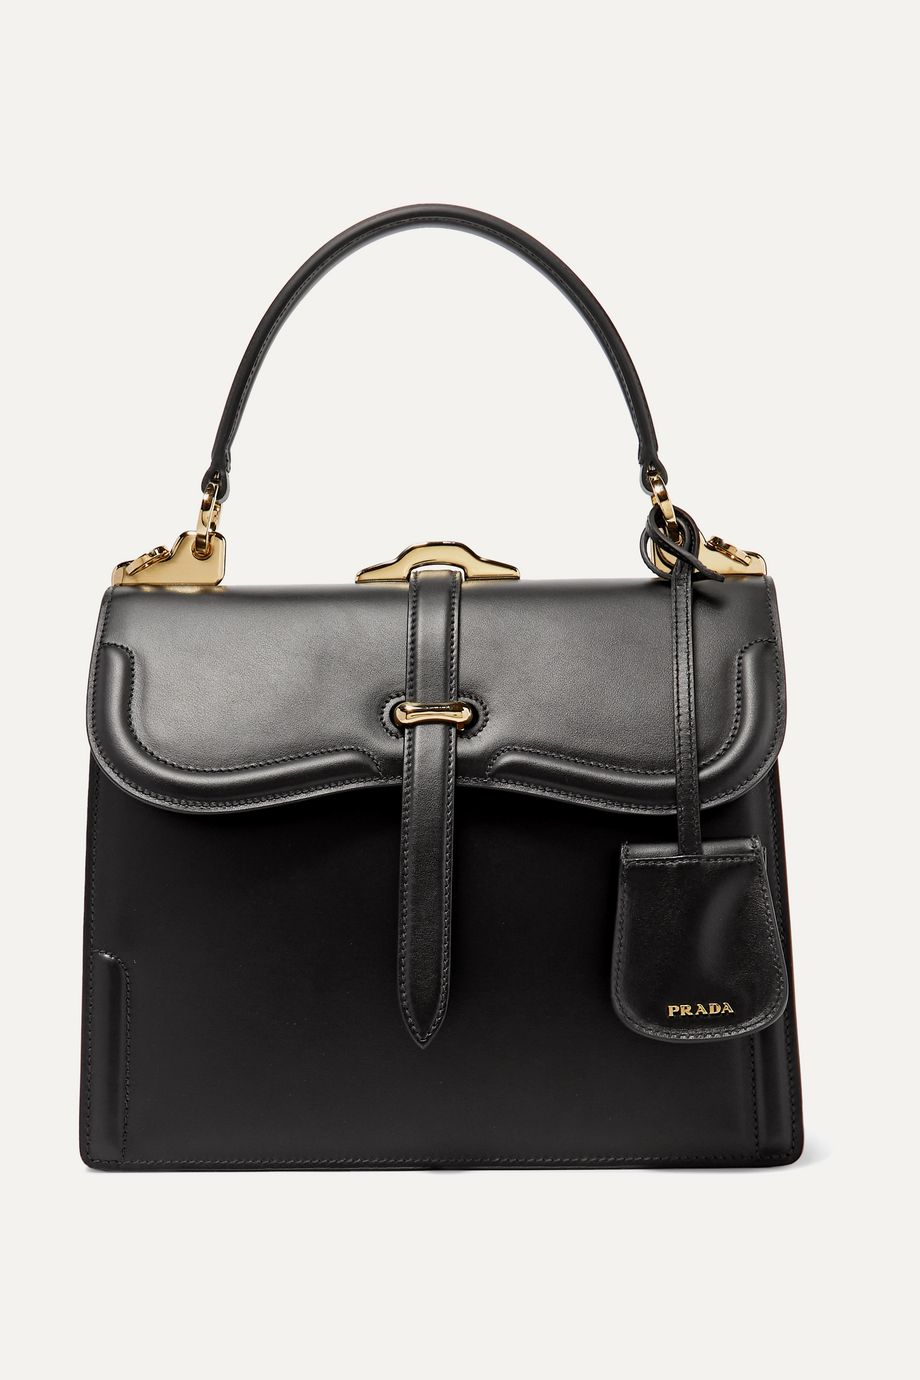 Prada Sidone leather shoulder bag